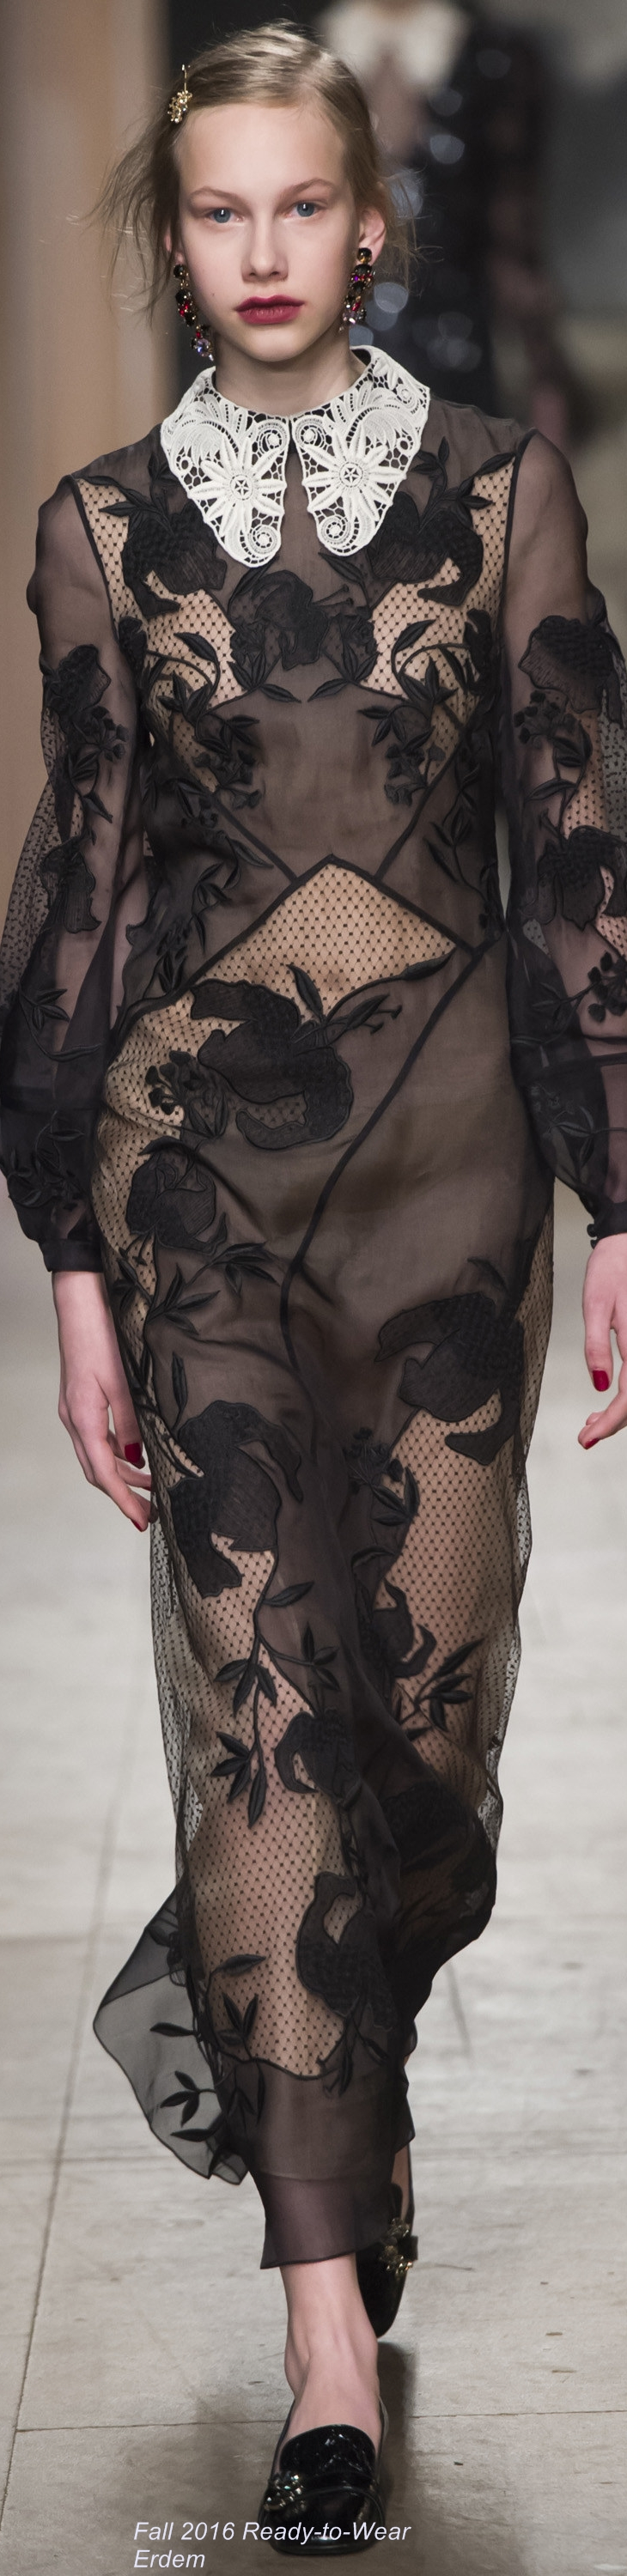 Fall 2016 Ready-to-Wear Erdem